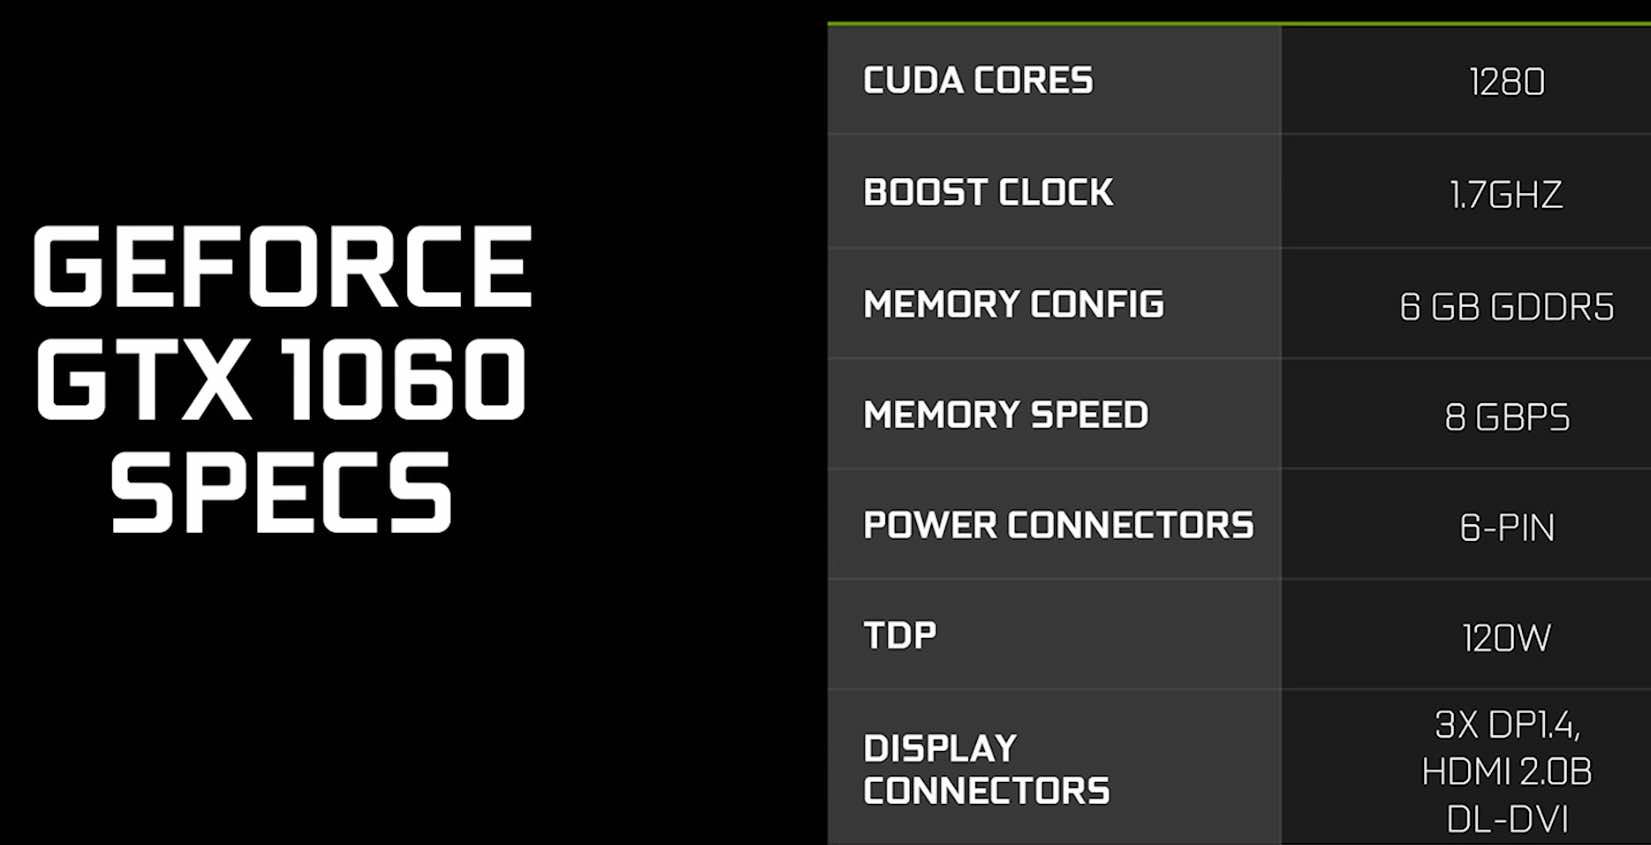 NVIDIA GeForce GTX 1060 pricing and availability details in India